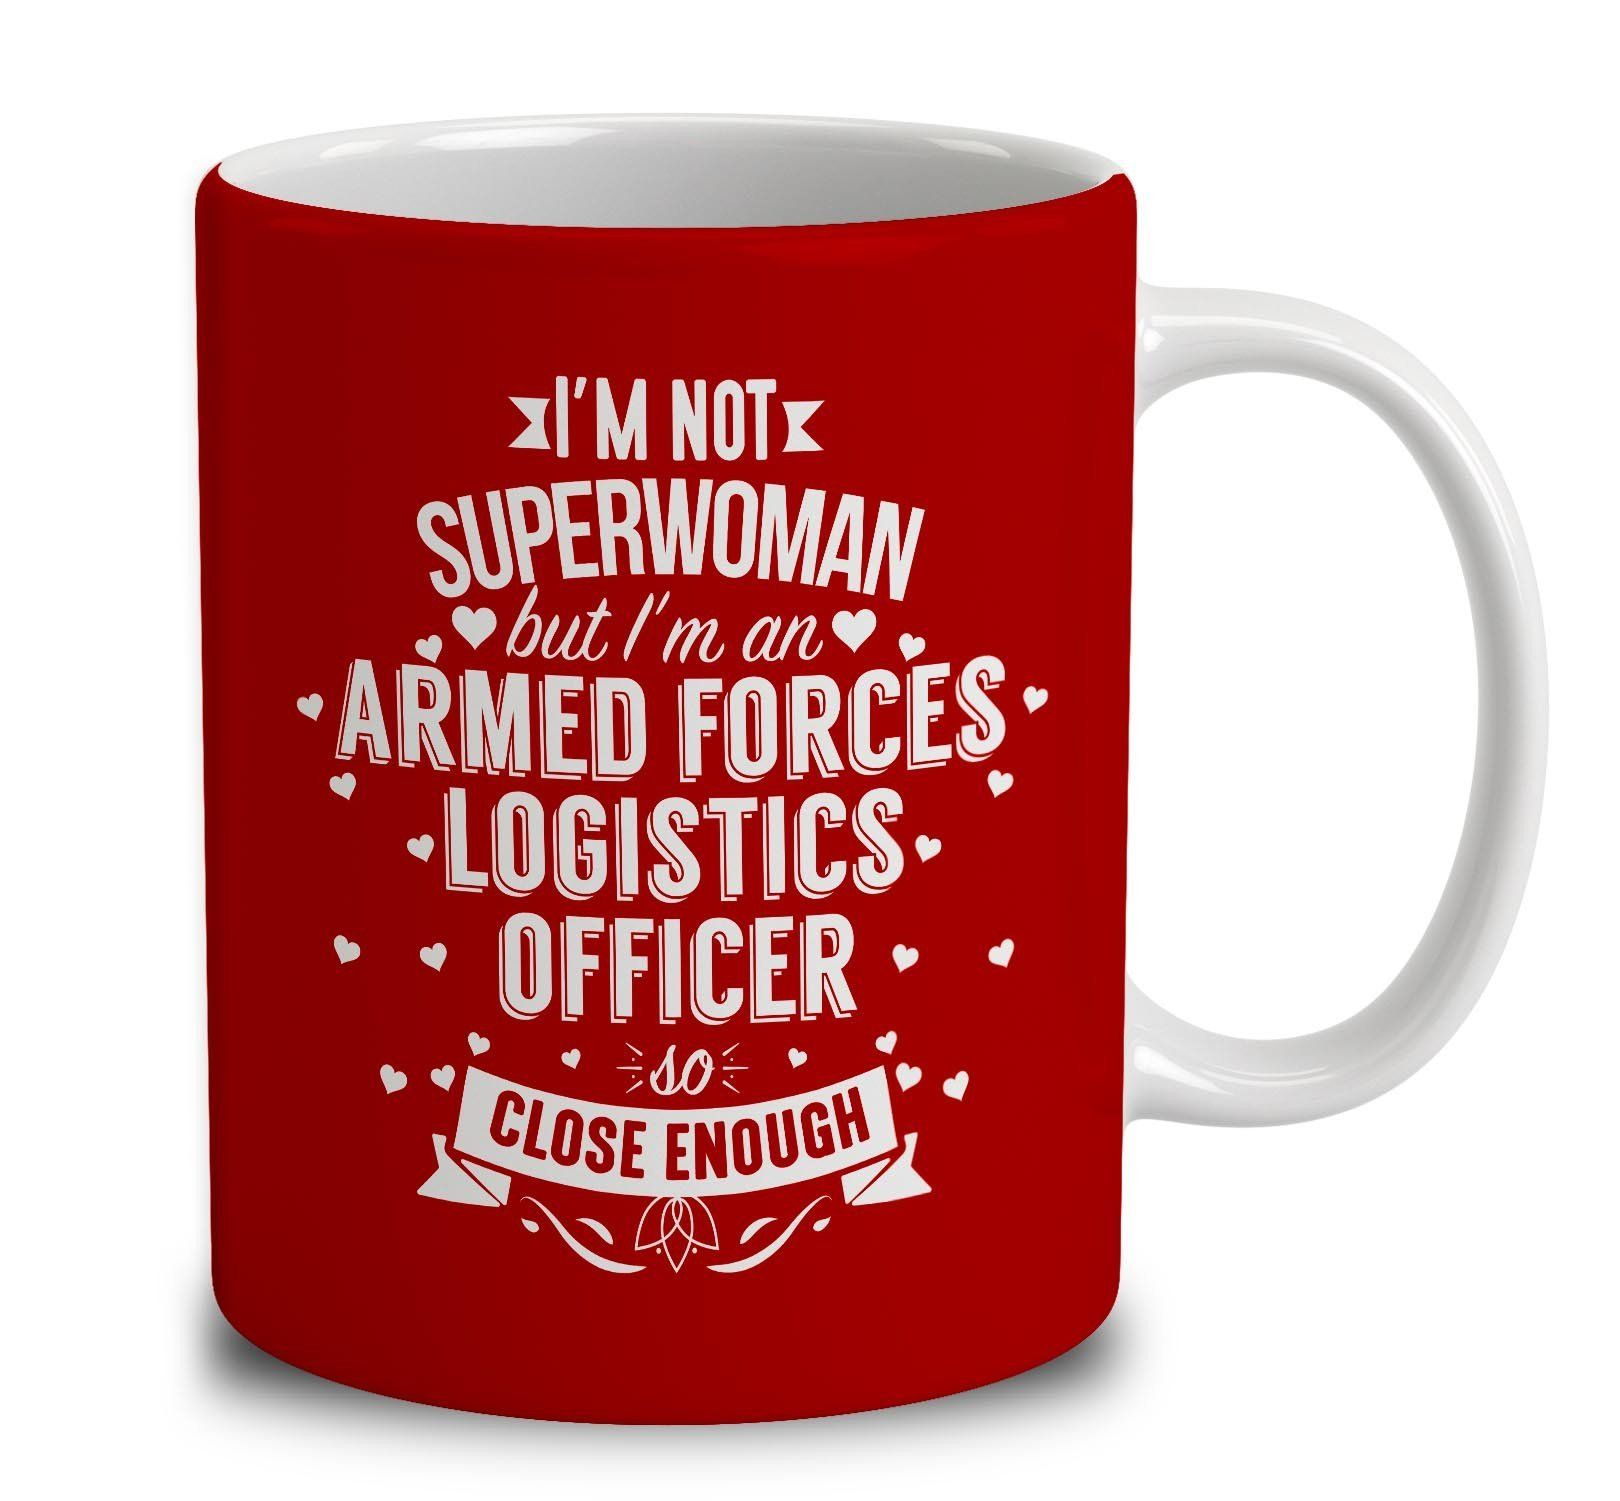 IM Not Superwoman But IM An Armed Forces Logistics Officer